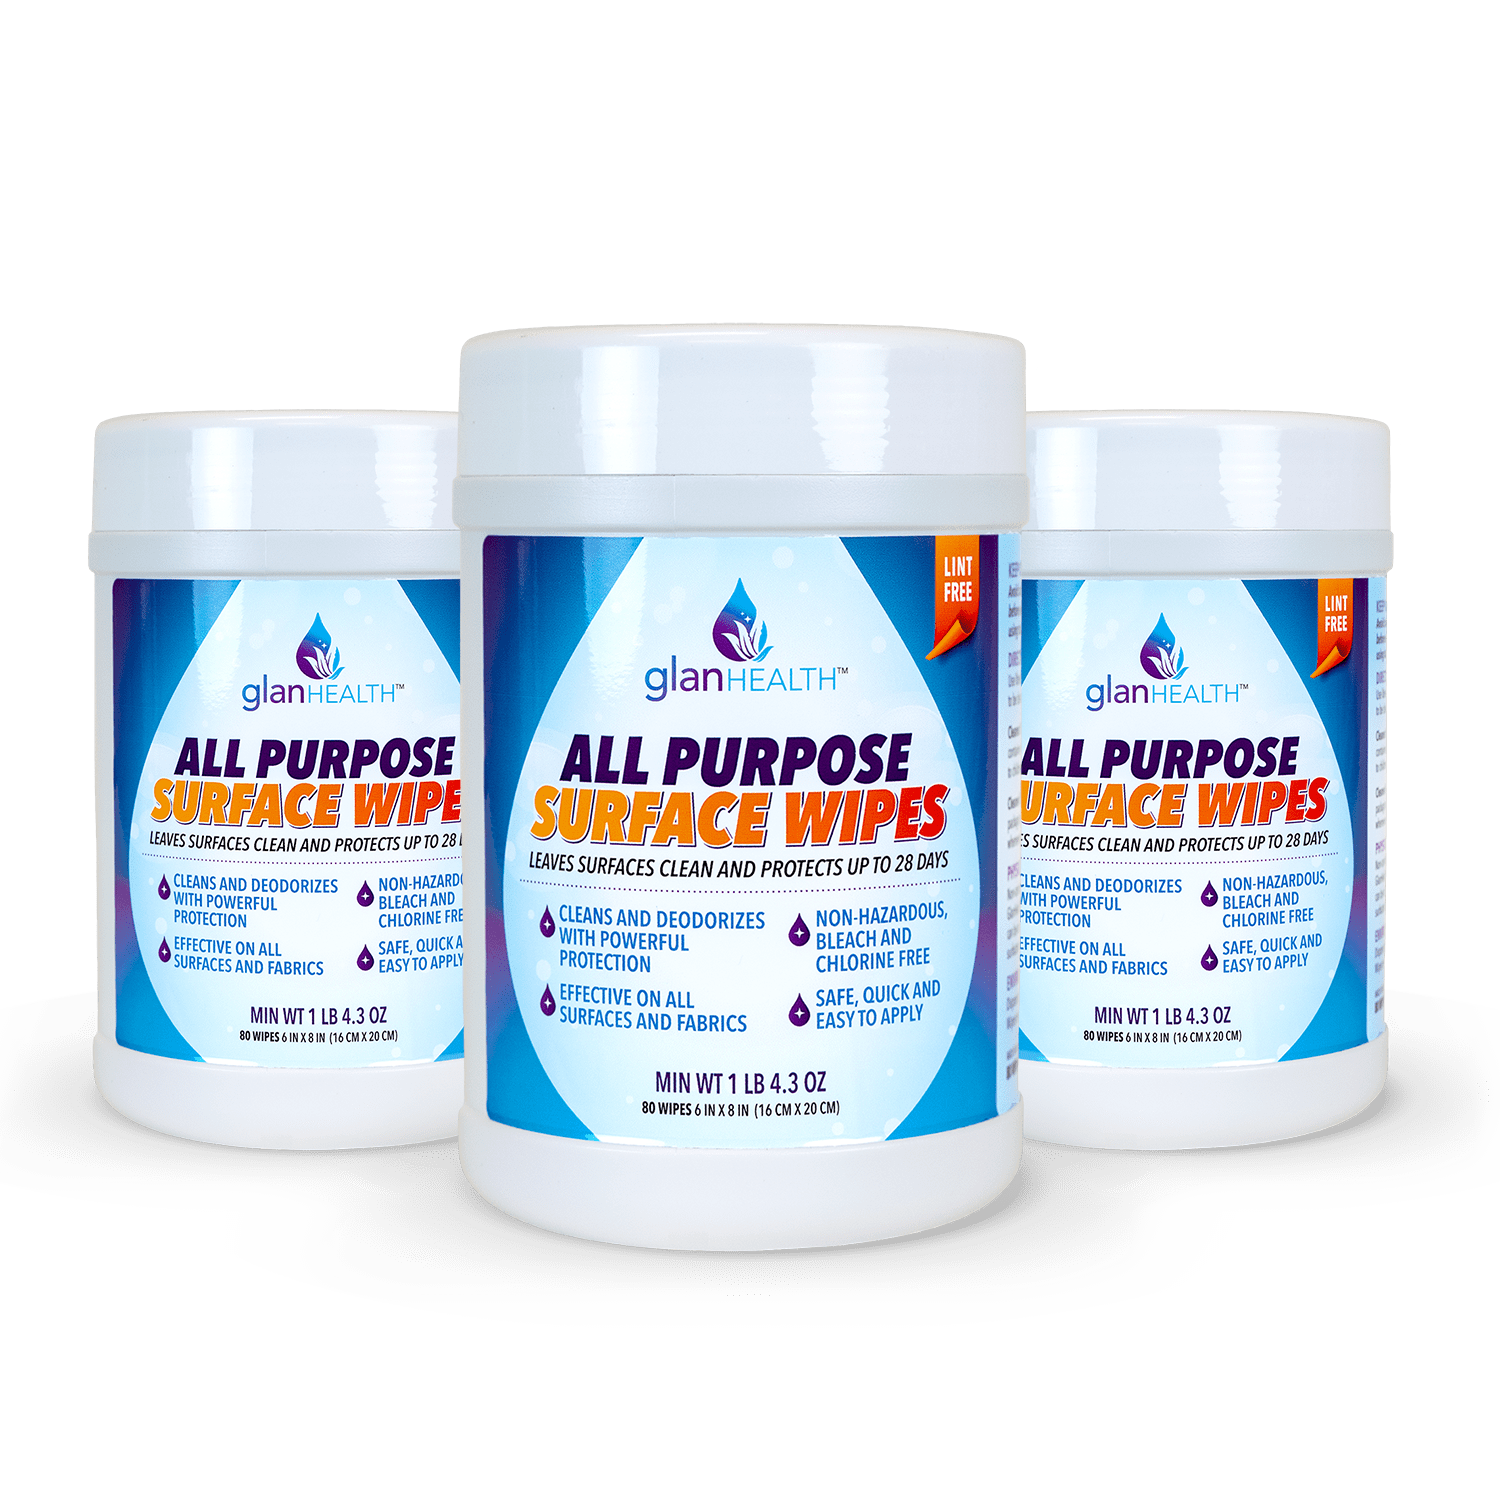 GlanHealth All Purpose Surface Wipes